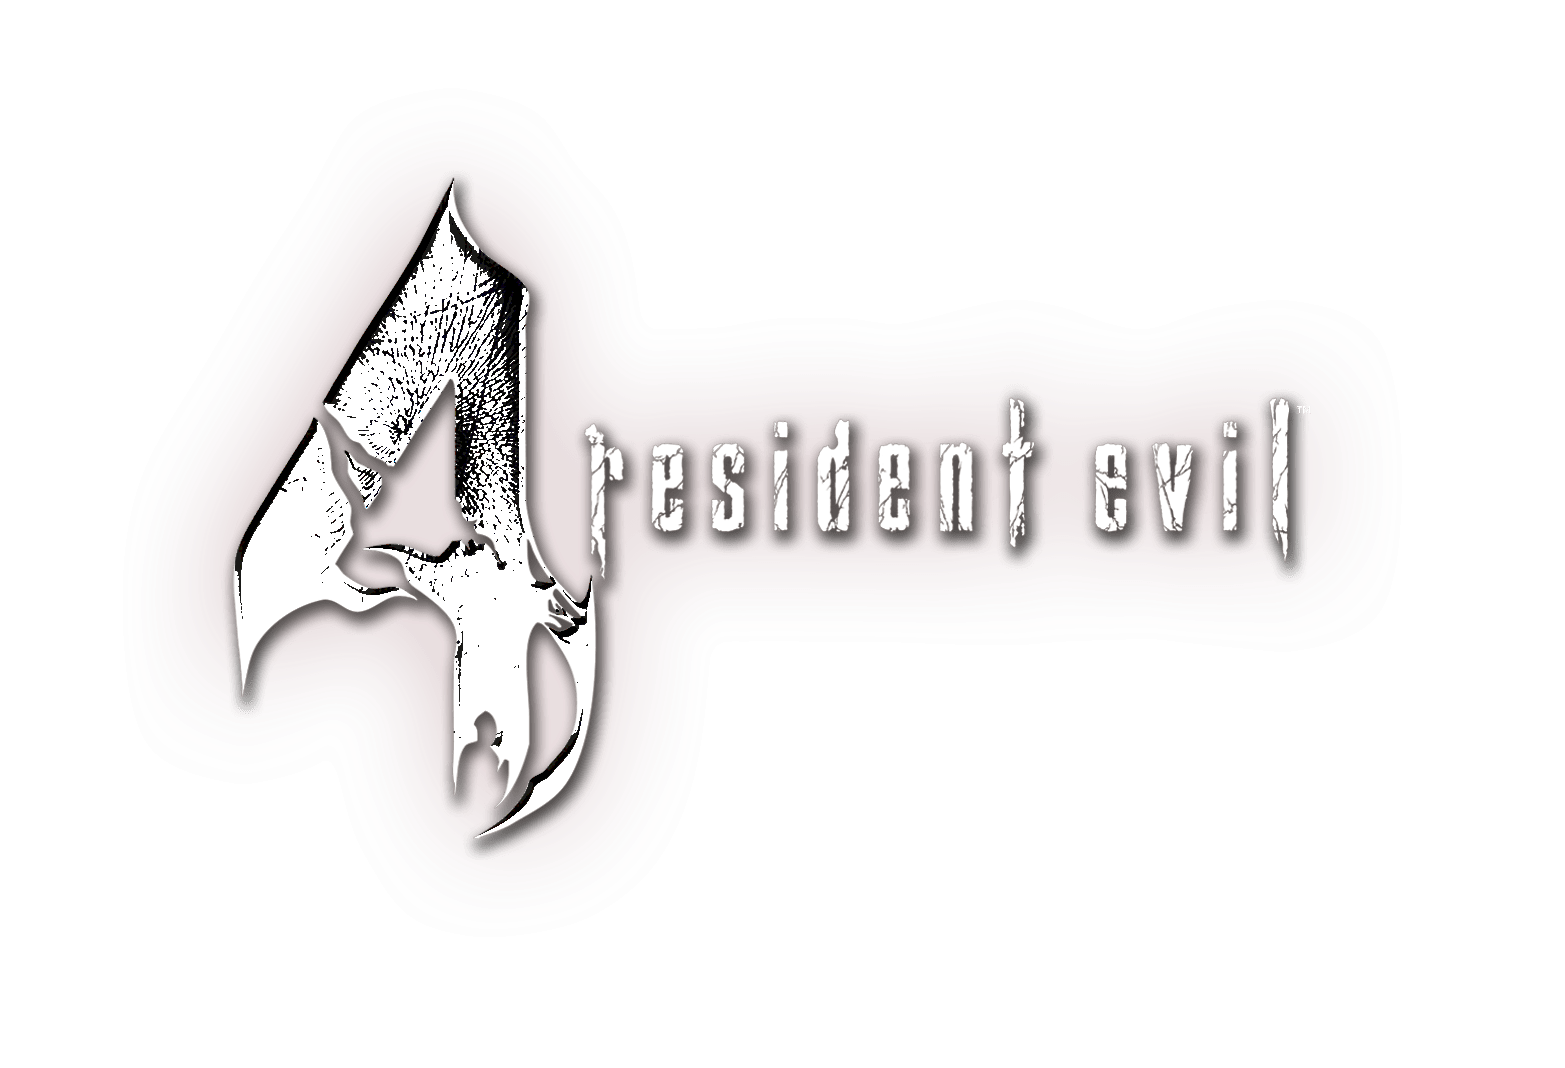 Resident evil 4 logo png. Ultimate hd edition of